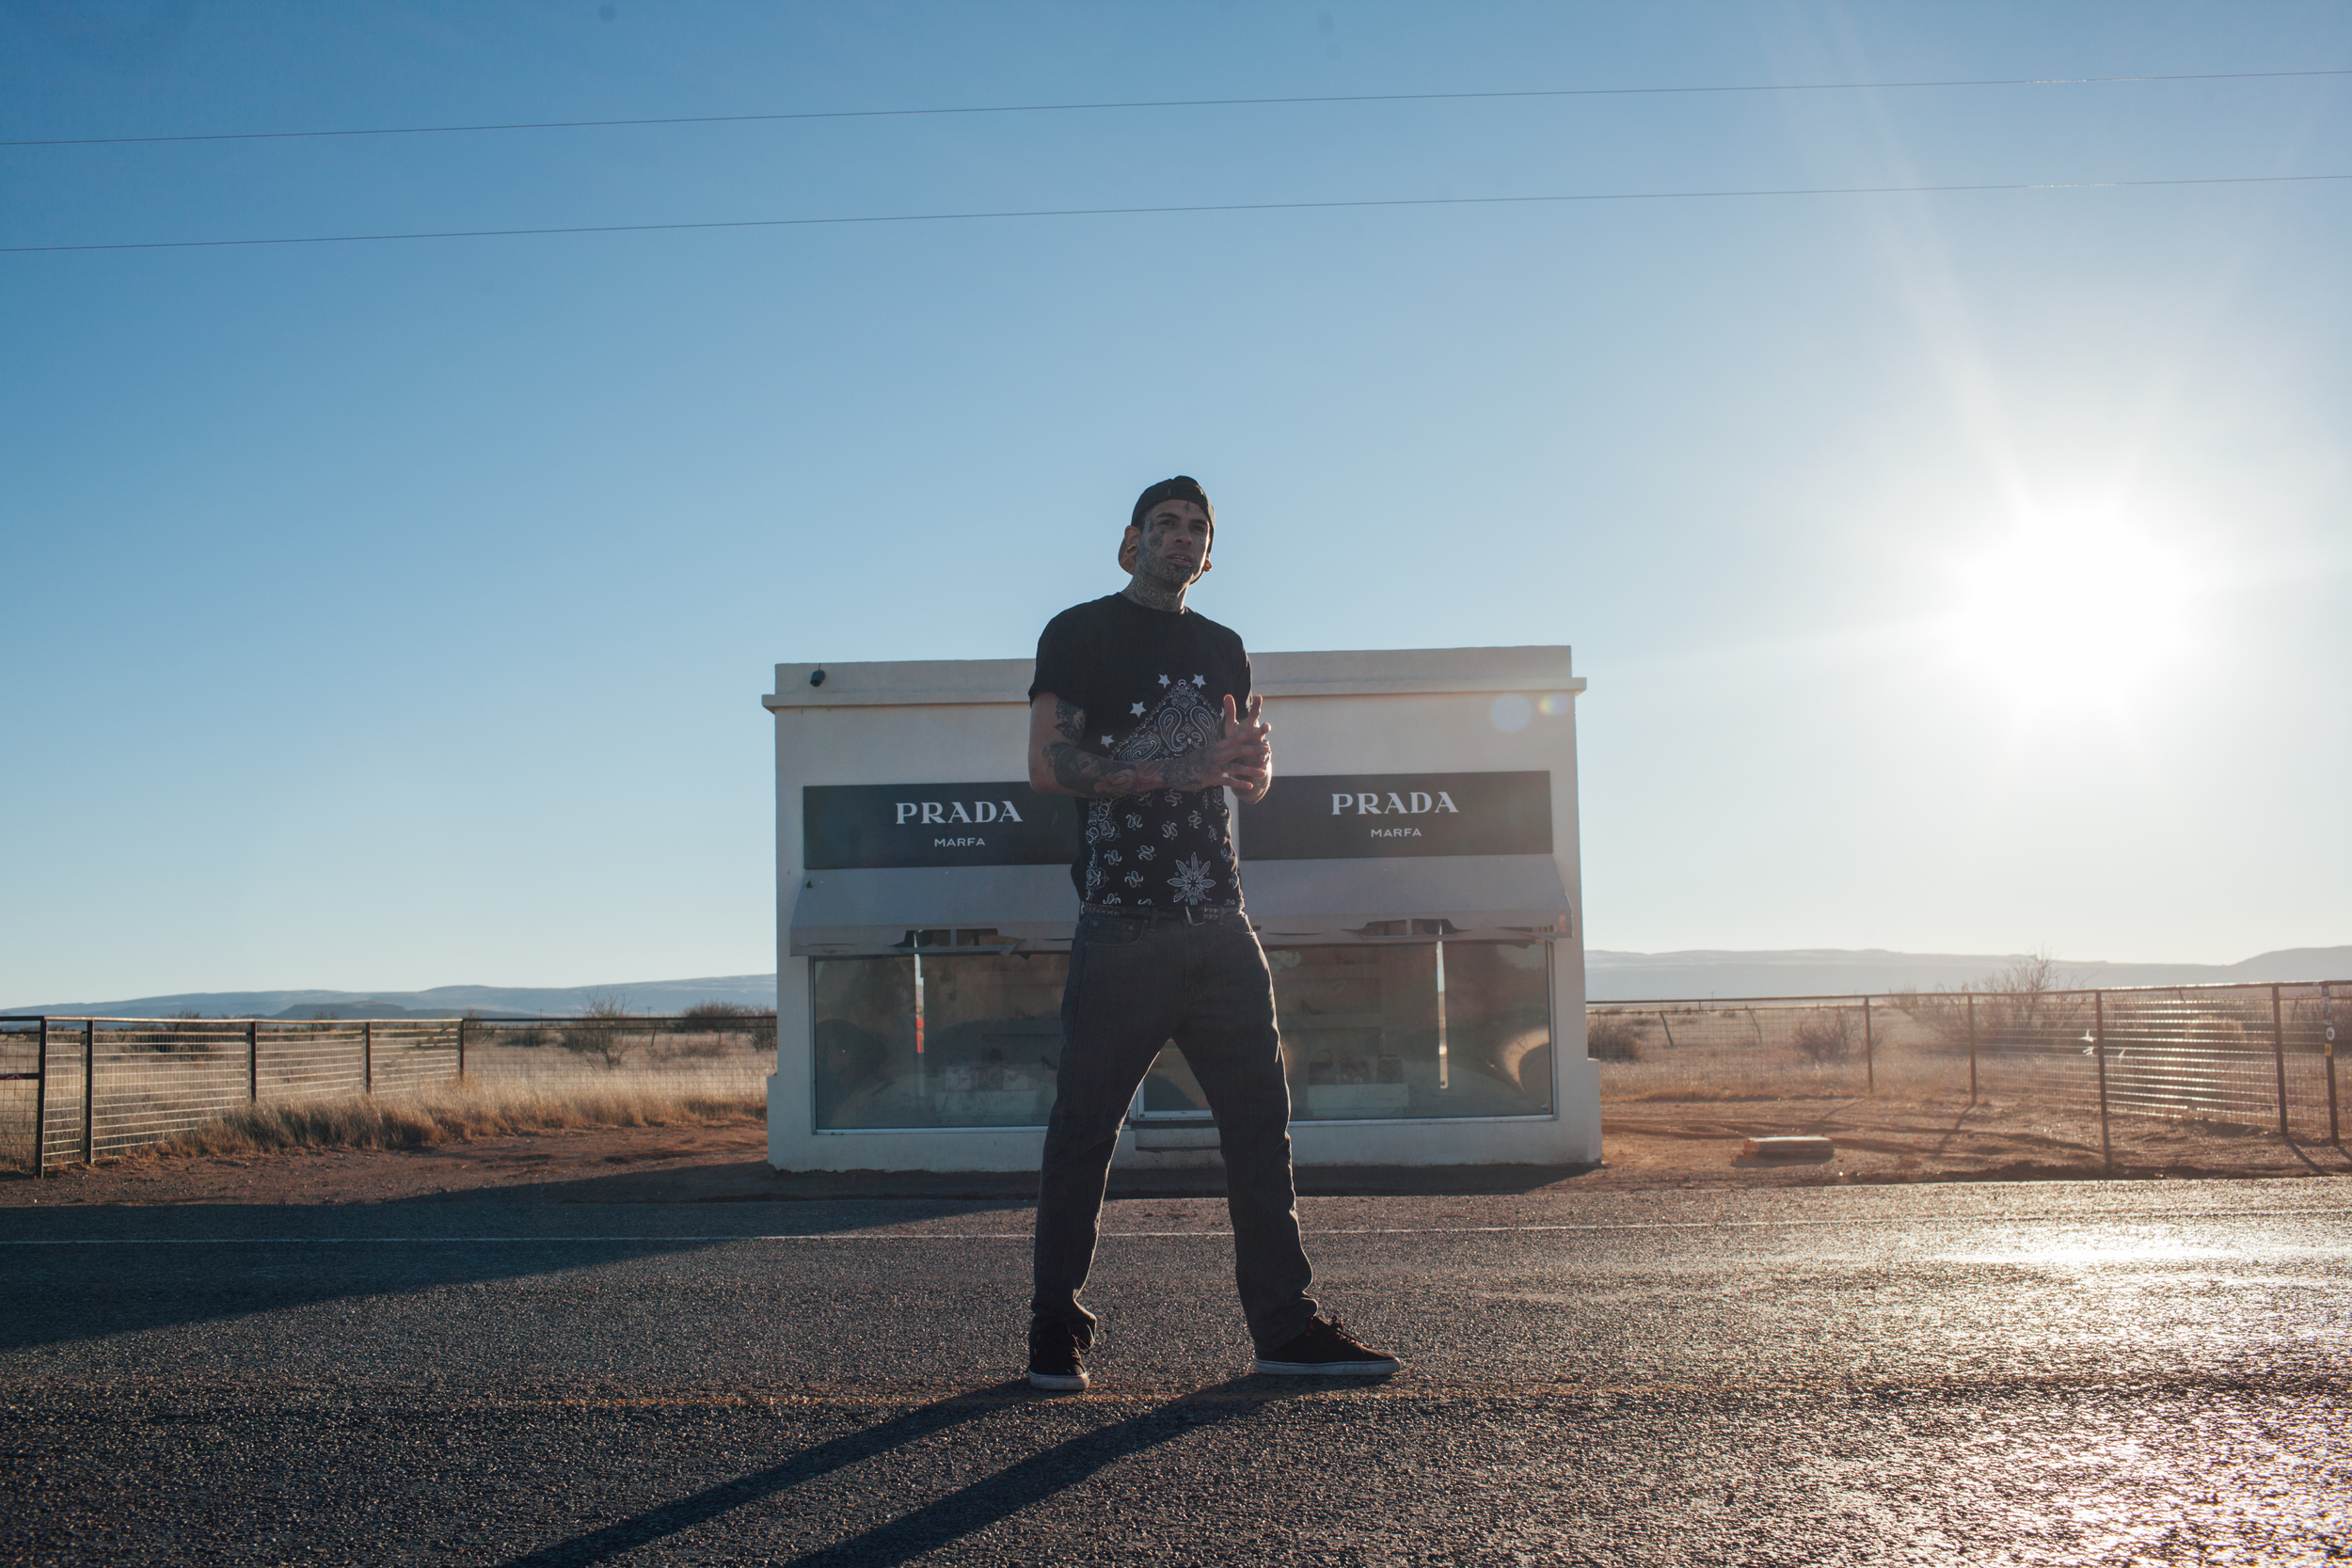 Prada Marfa Tattoos Lifestyle Fashion by The Finches